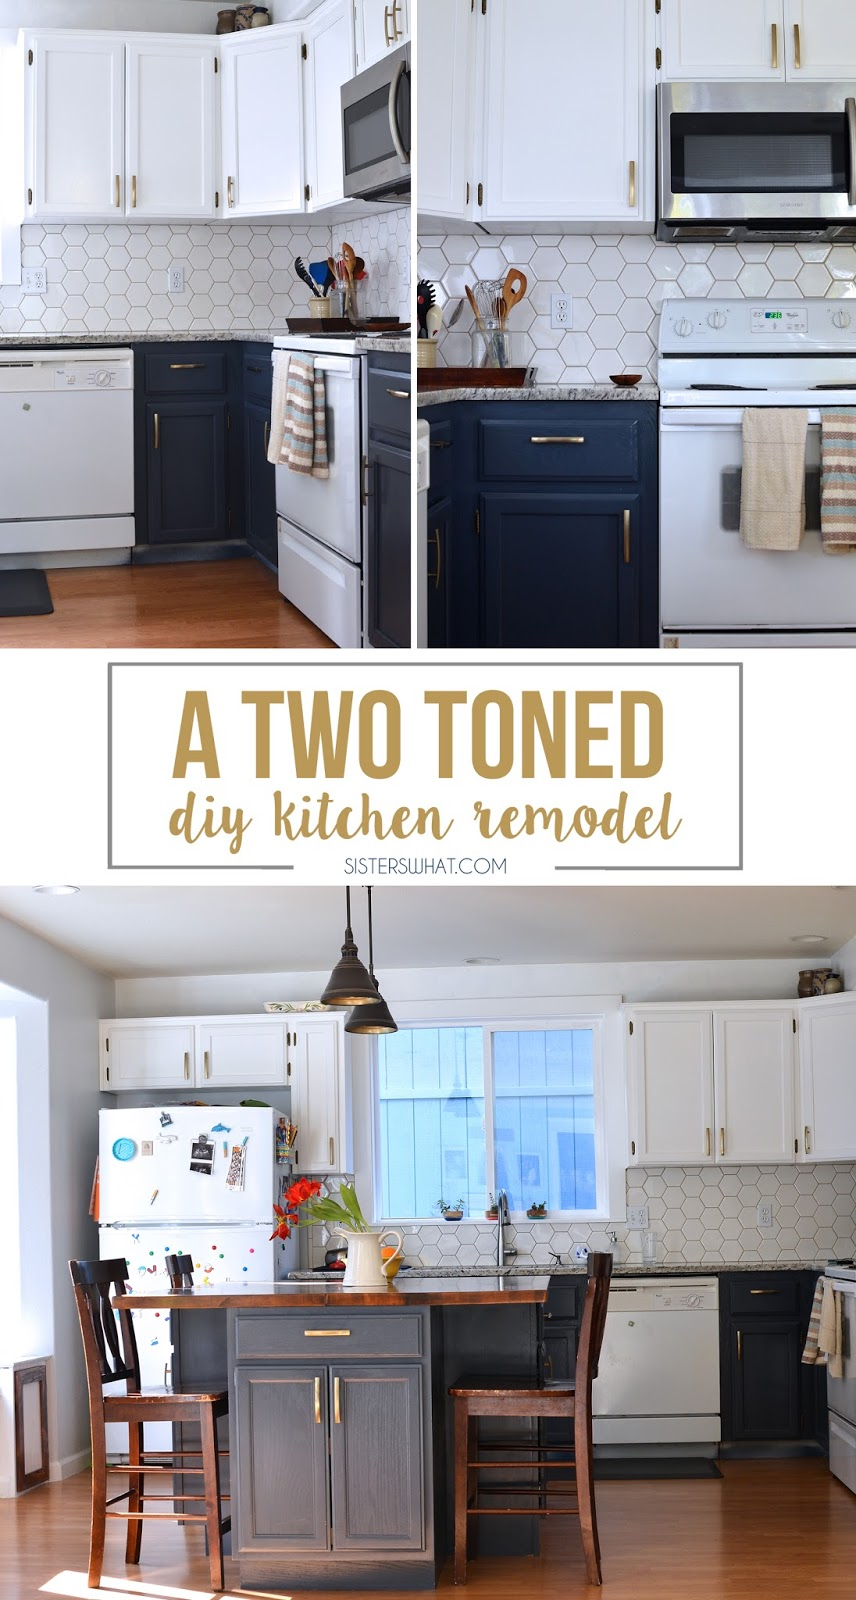 a two toned diy kitchen remodel diy kitchen remodel a two toned diy kitchen remodel